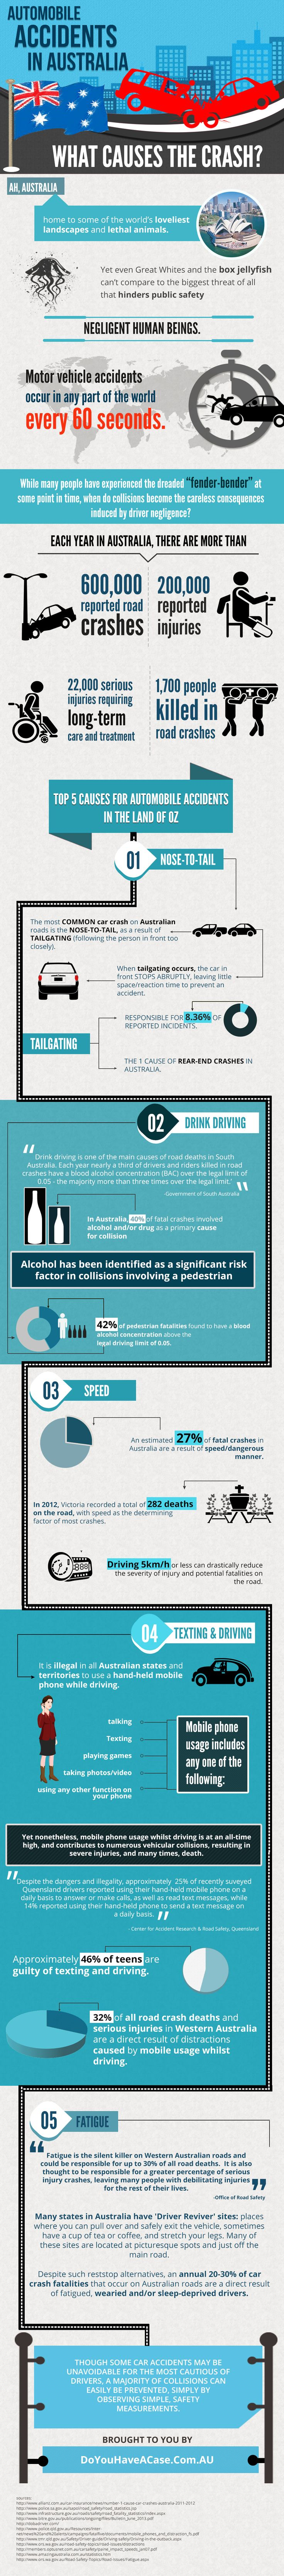 Motor Vehicle Accidents in Australia: What Causes the Crash?